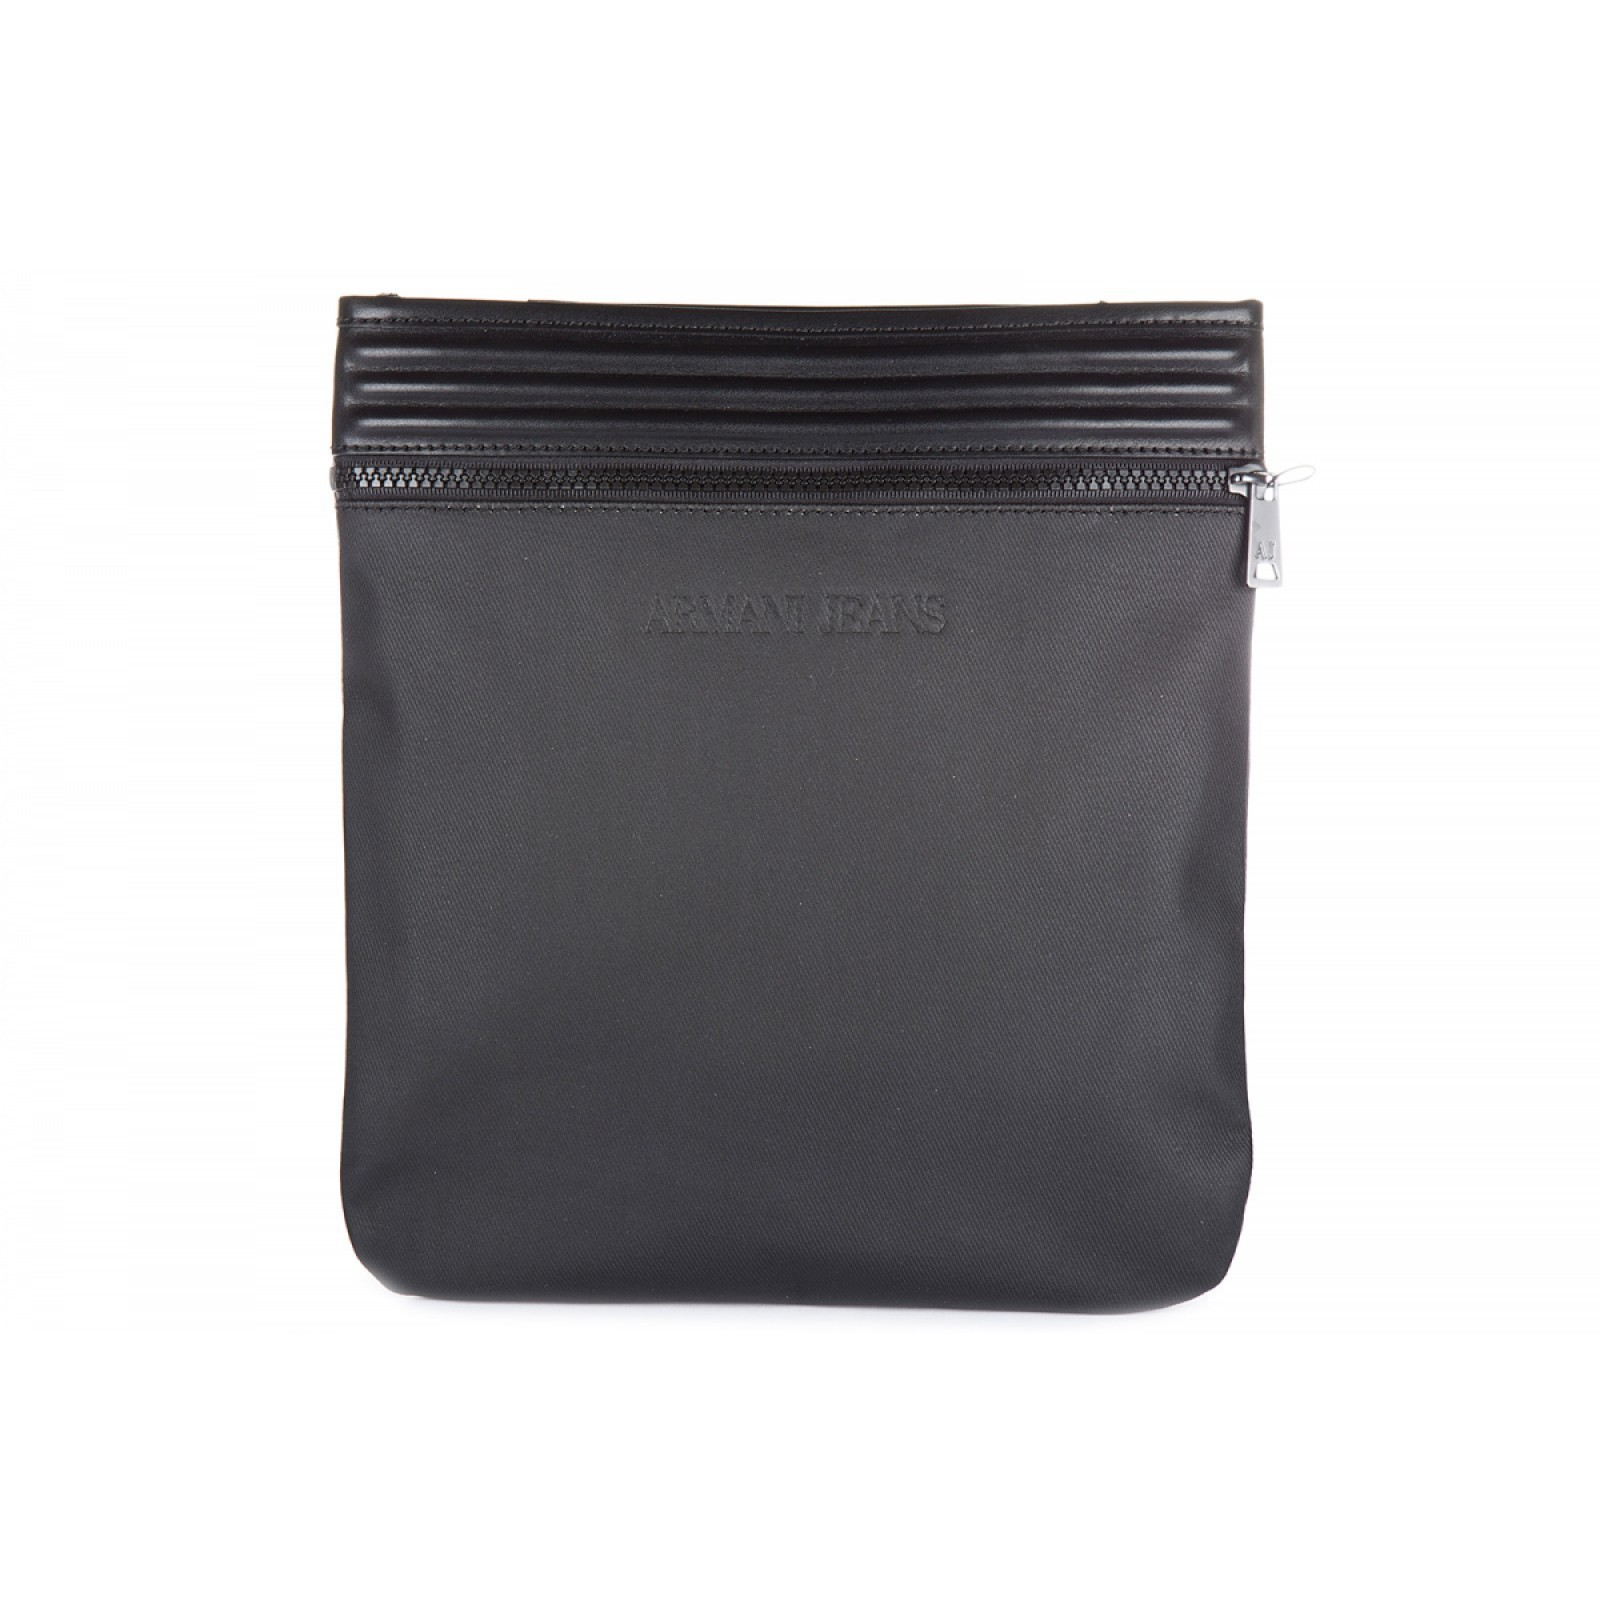 送料込 cross-body messenger shoulder bag バッグ